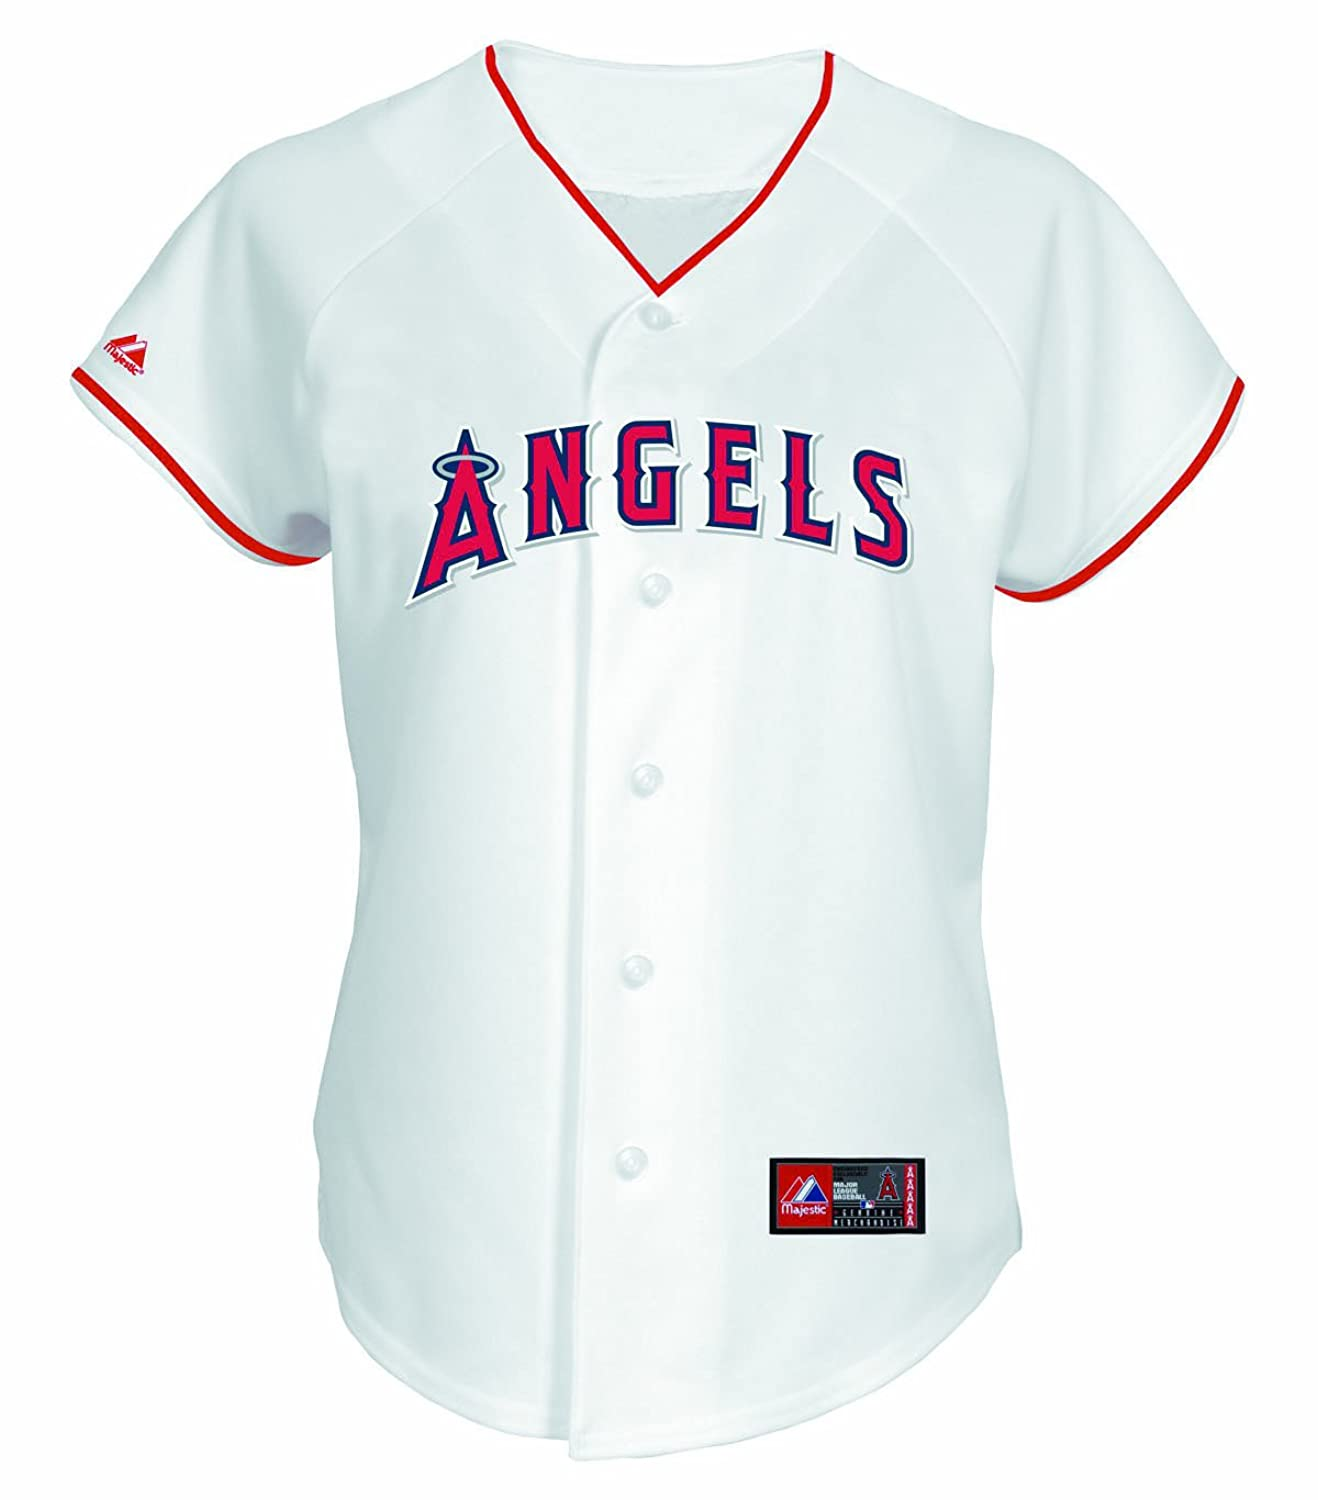 4bca7df4703 ... Stitched MLB Jersey Amazon.com MLB Los Angeles Angels Albert Pujols  White Home Replica Baseball Womens Jersey, Minnesota Twins ...